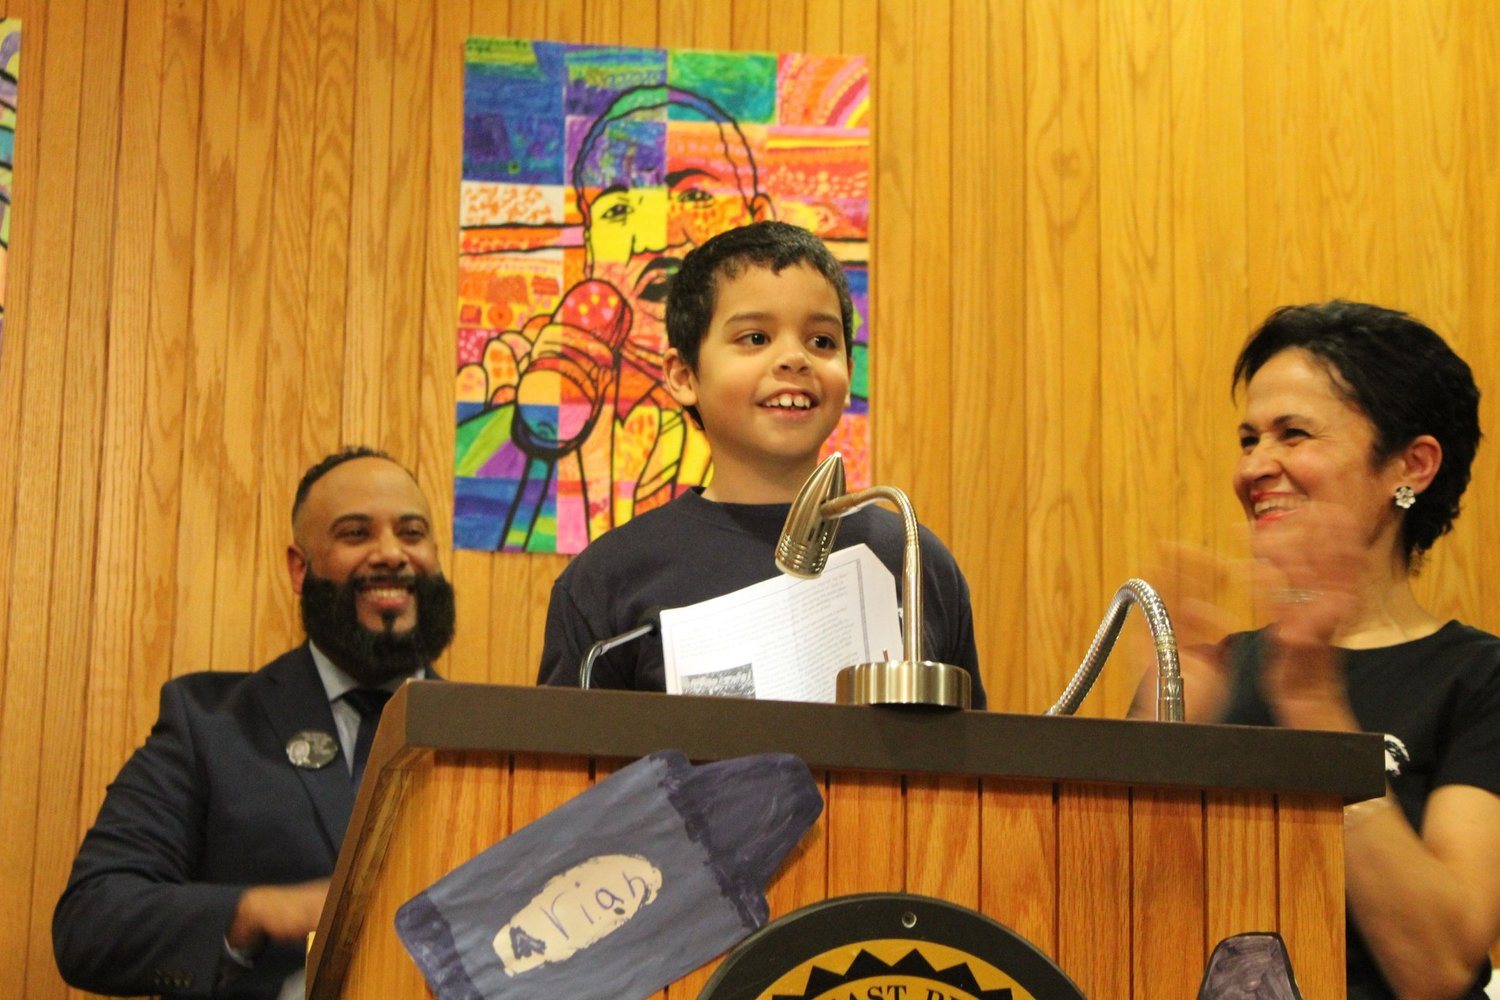 MLK Commemorative event last month at EP City Hall